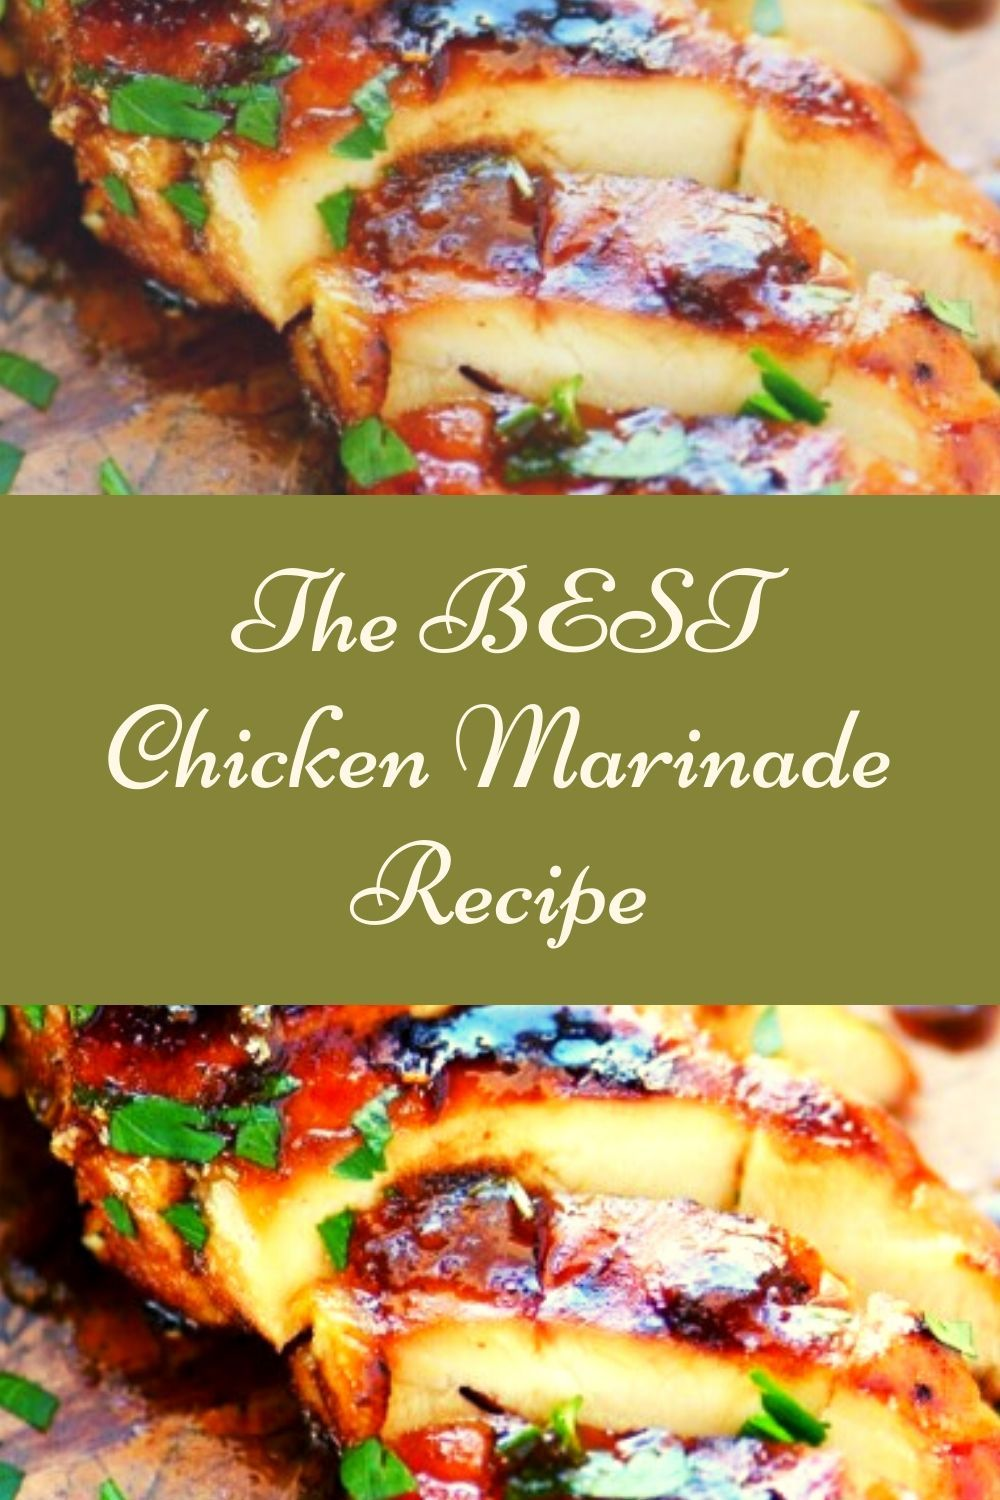 Photo of The BEST Chicken Marinade Recipe